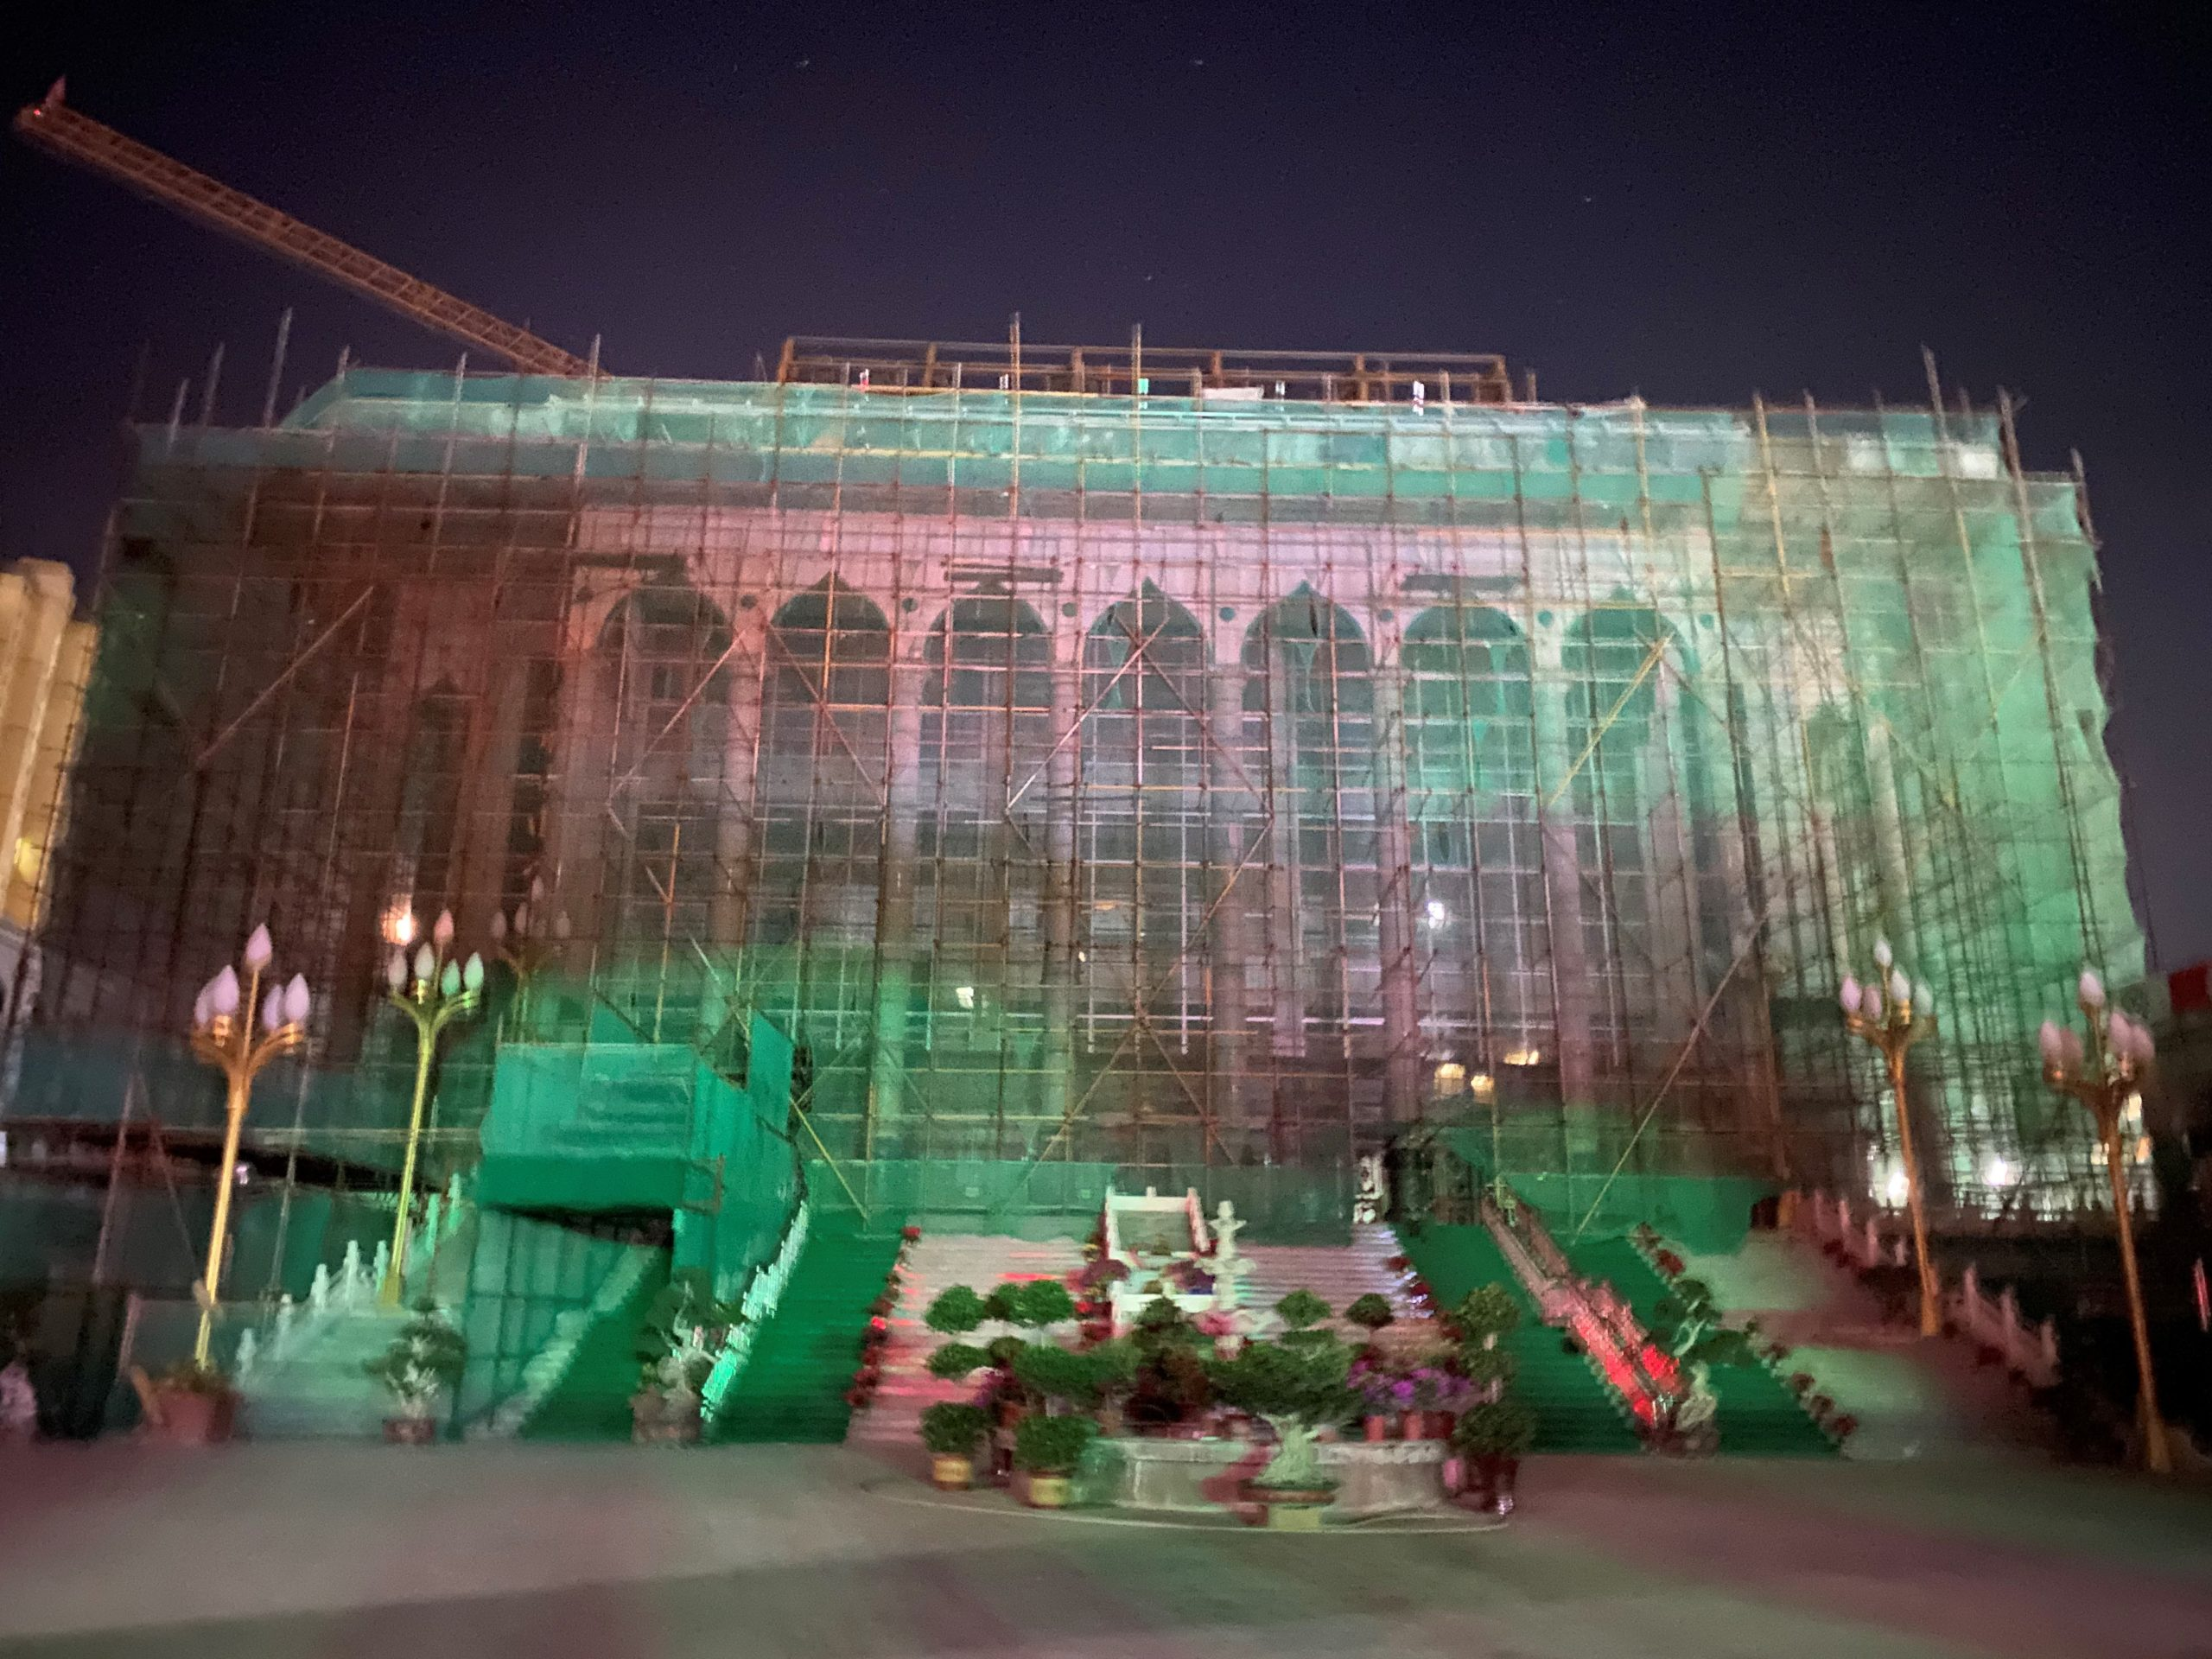 Photograph of a mosque under renovation